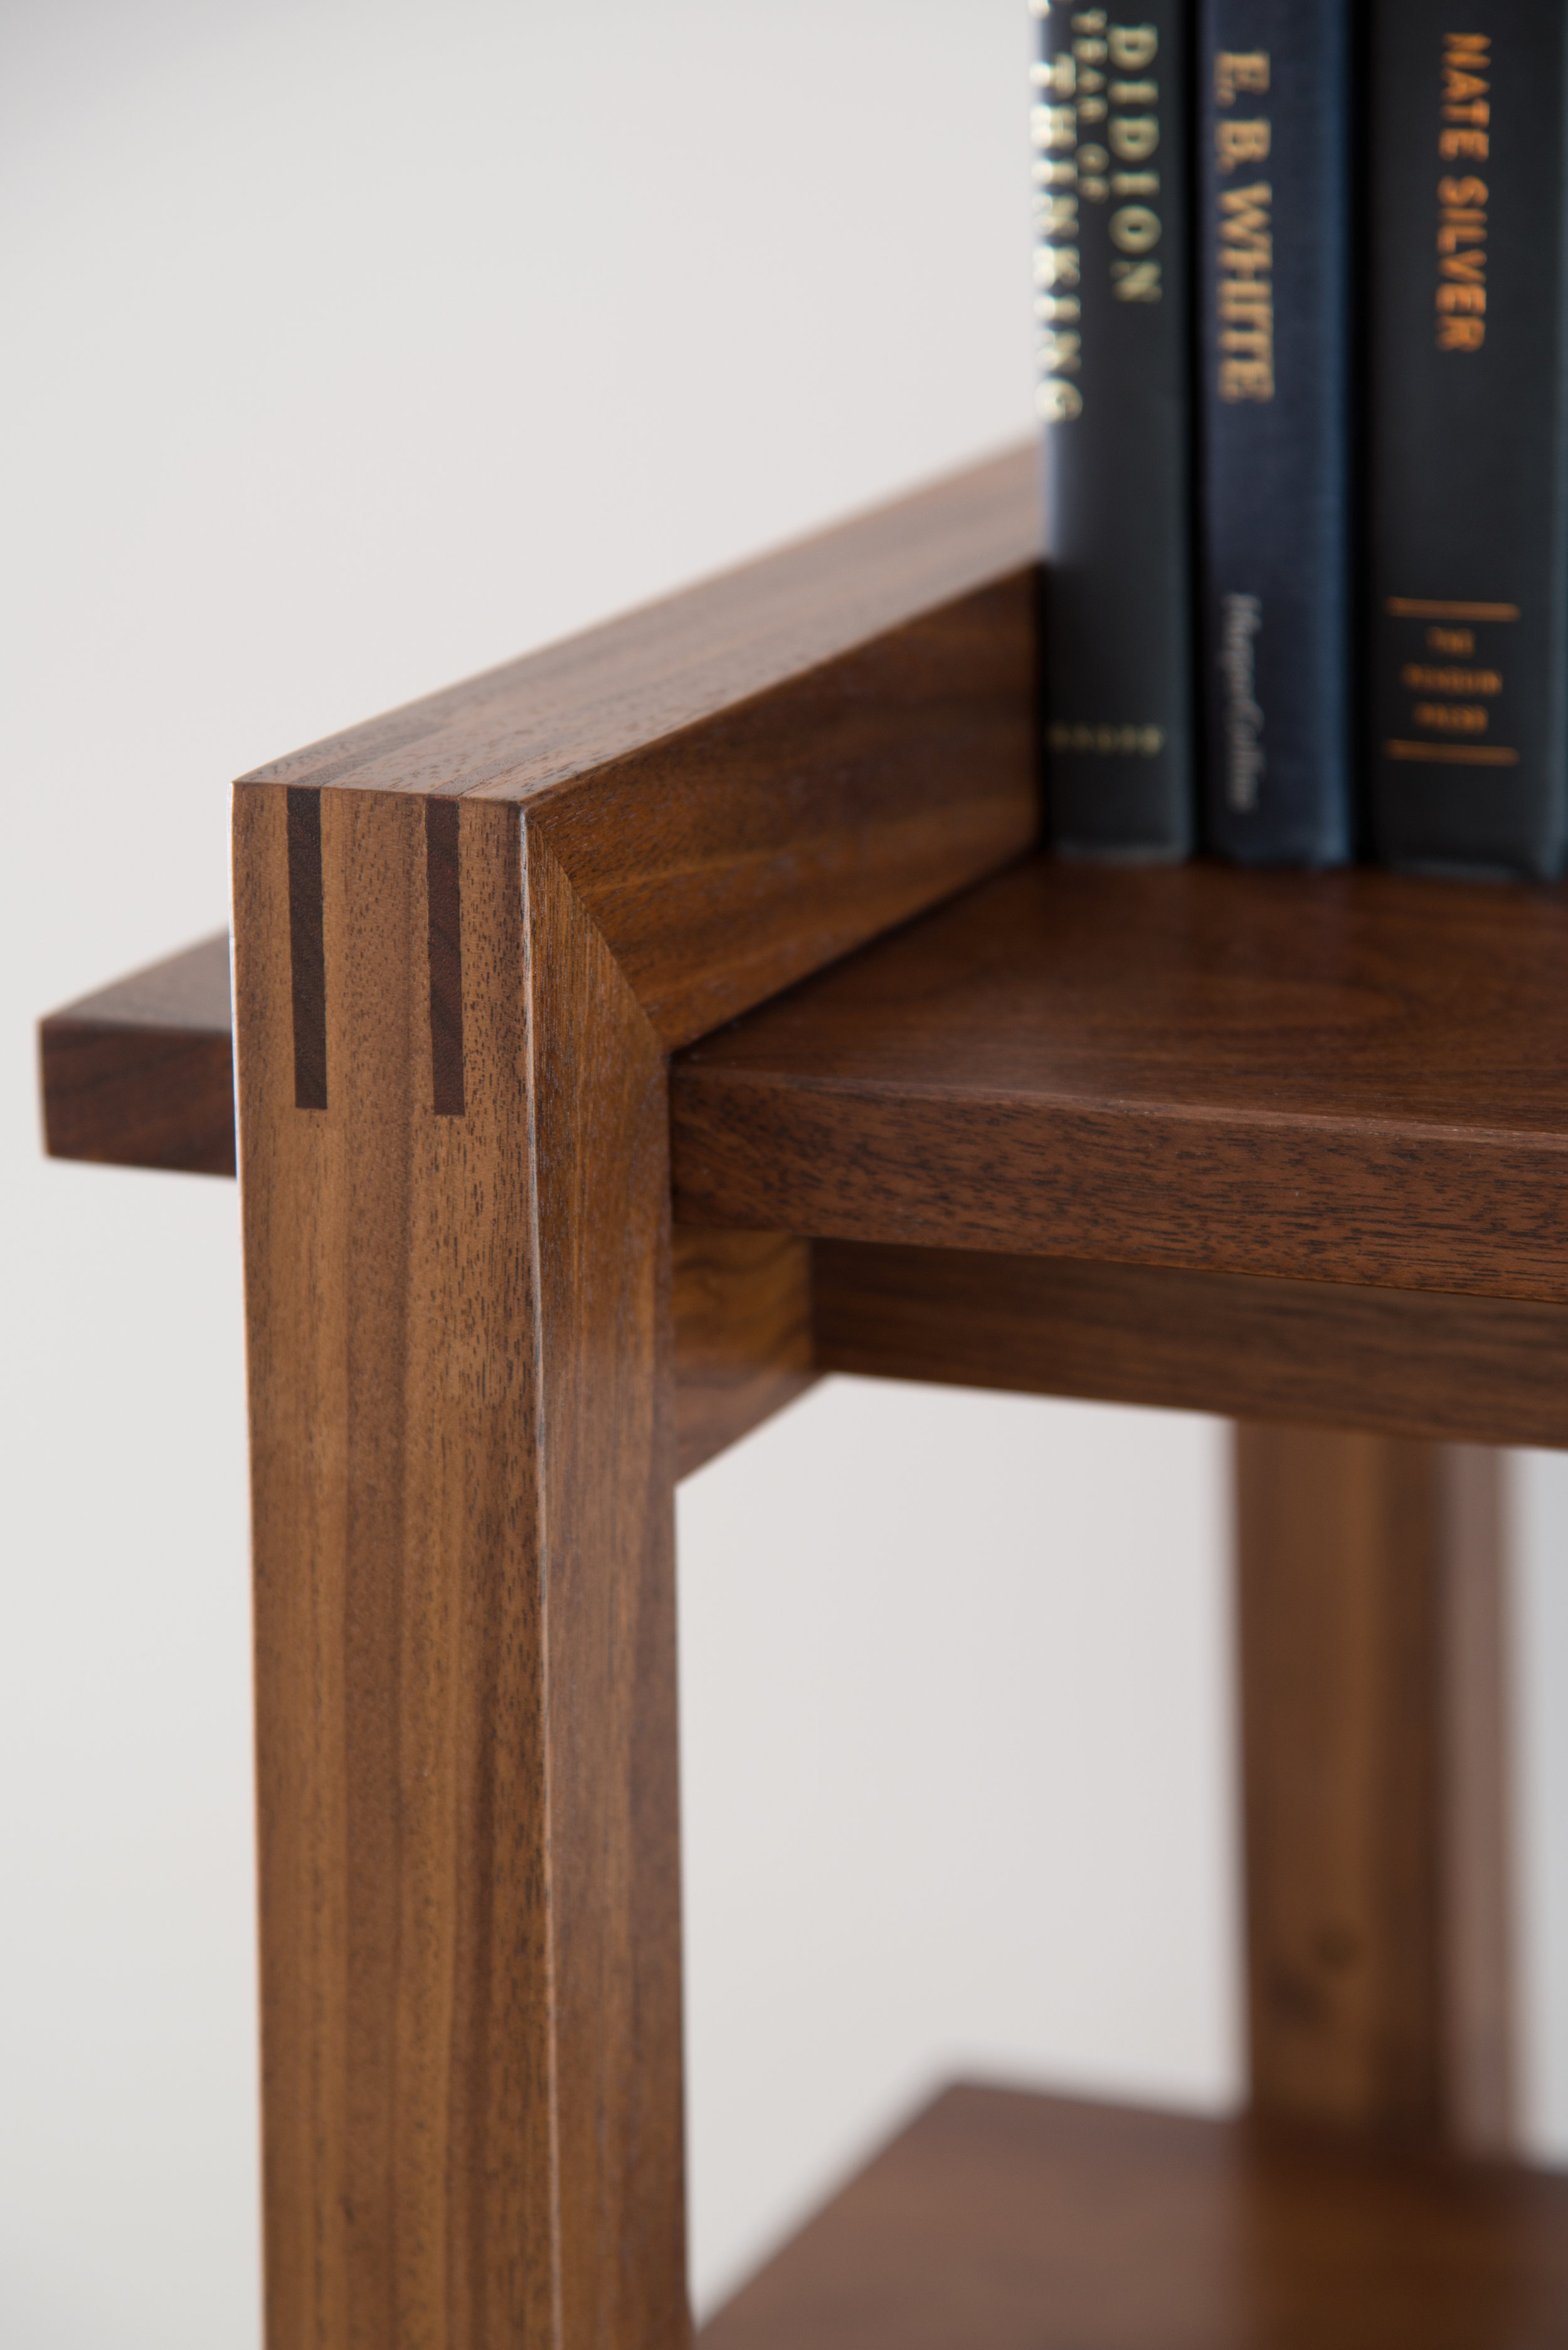 > Detail of Bookshelf joinery.